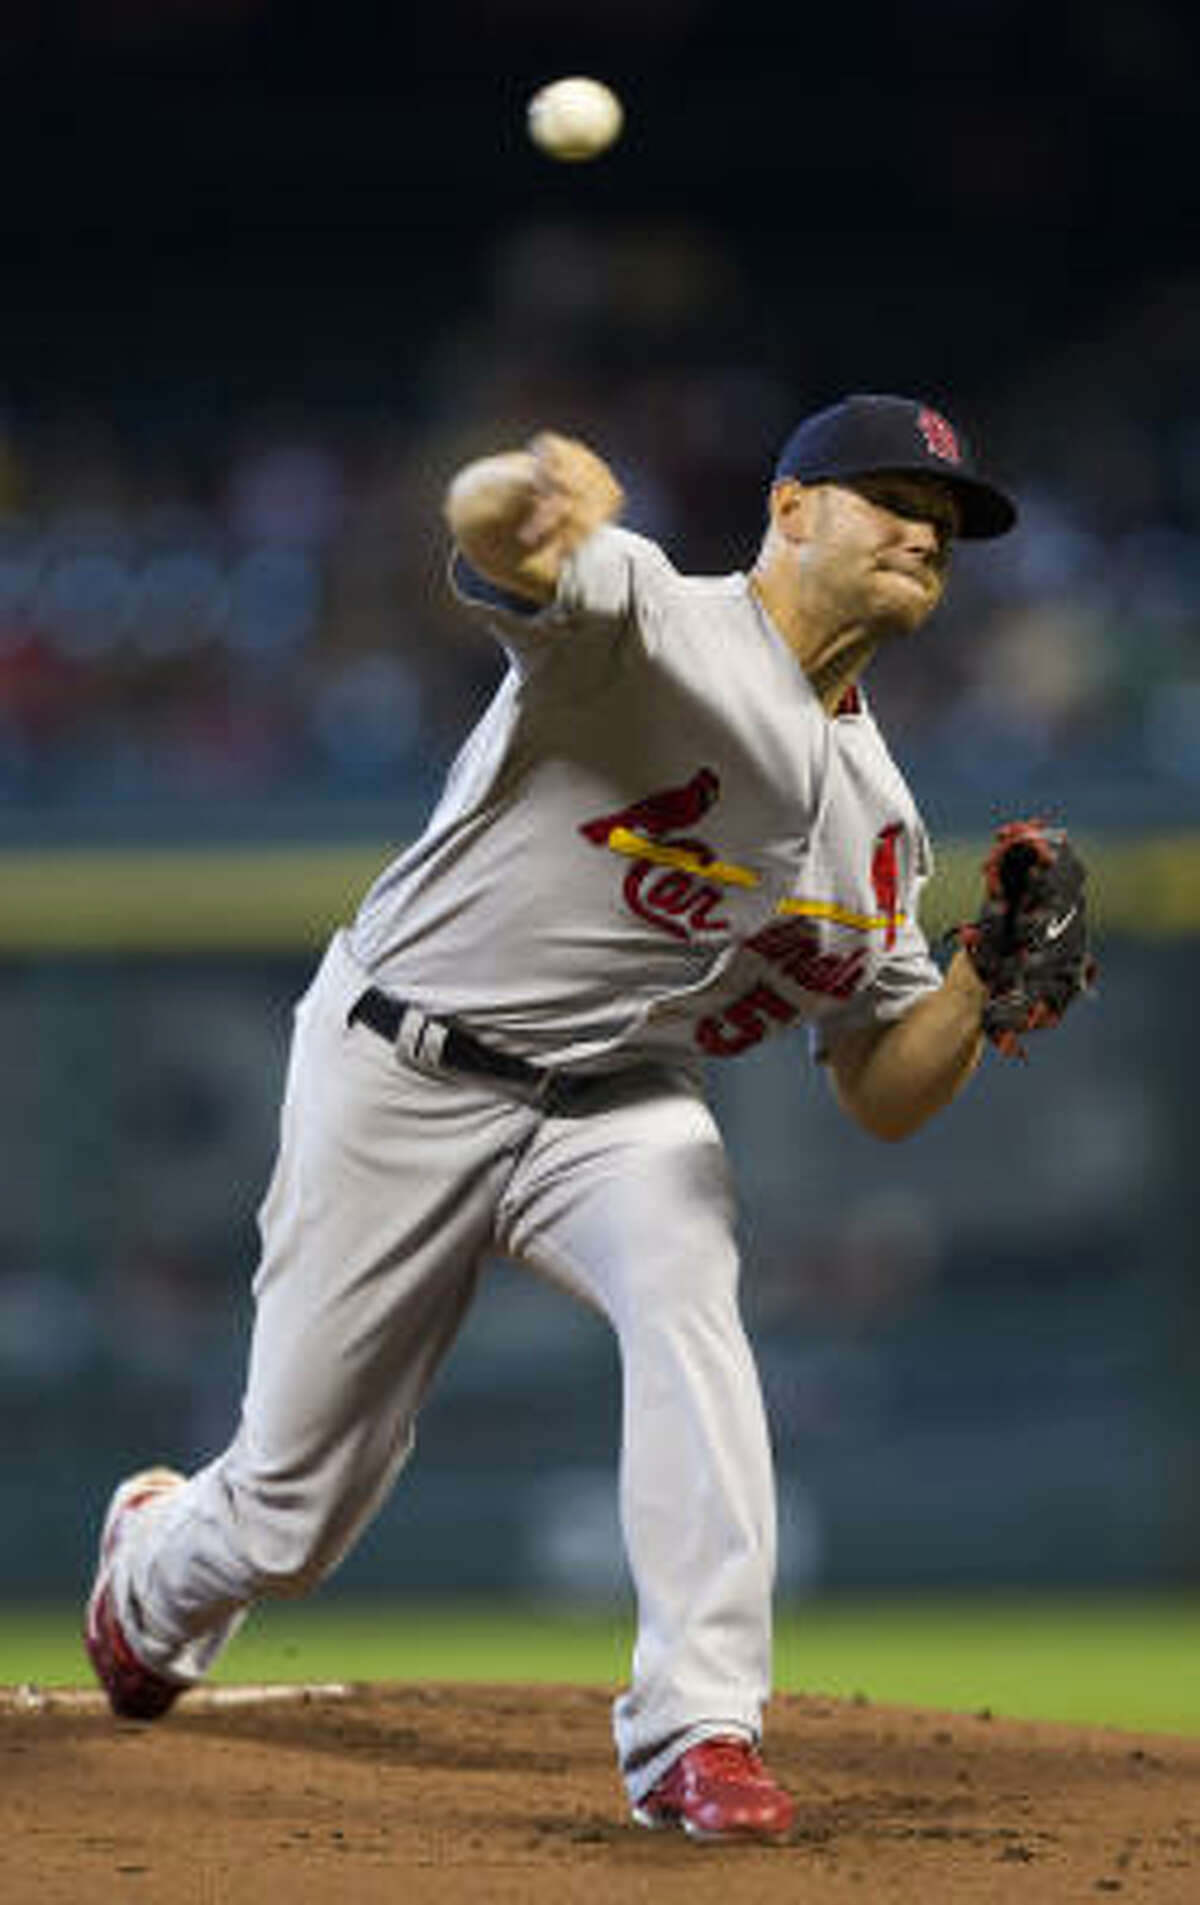 Cardinals starter pitcher Blake Hawksworth allowed two runs before being relieved after 5 1/3 innings.